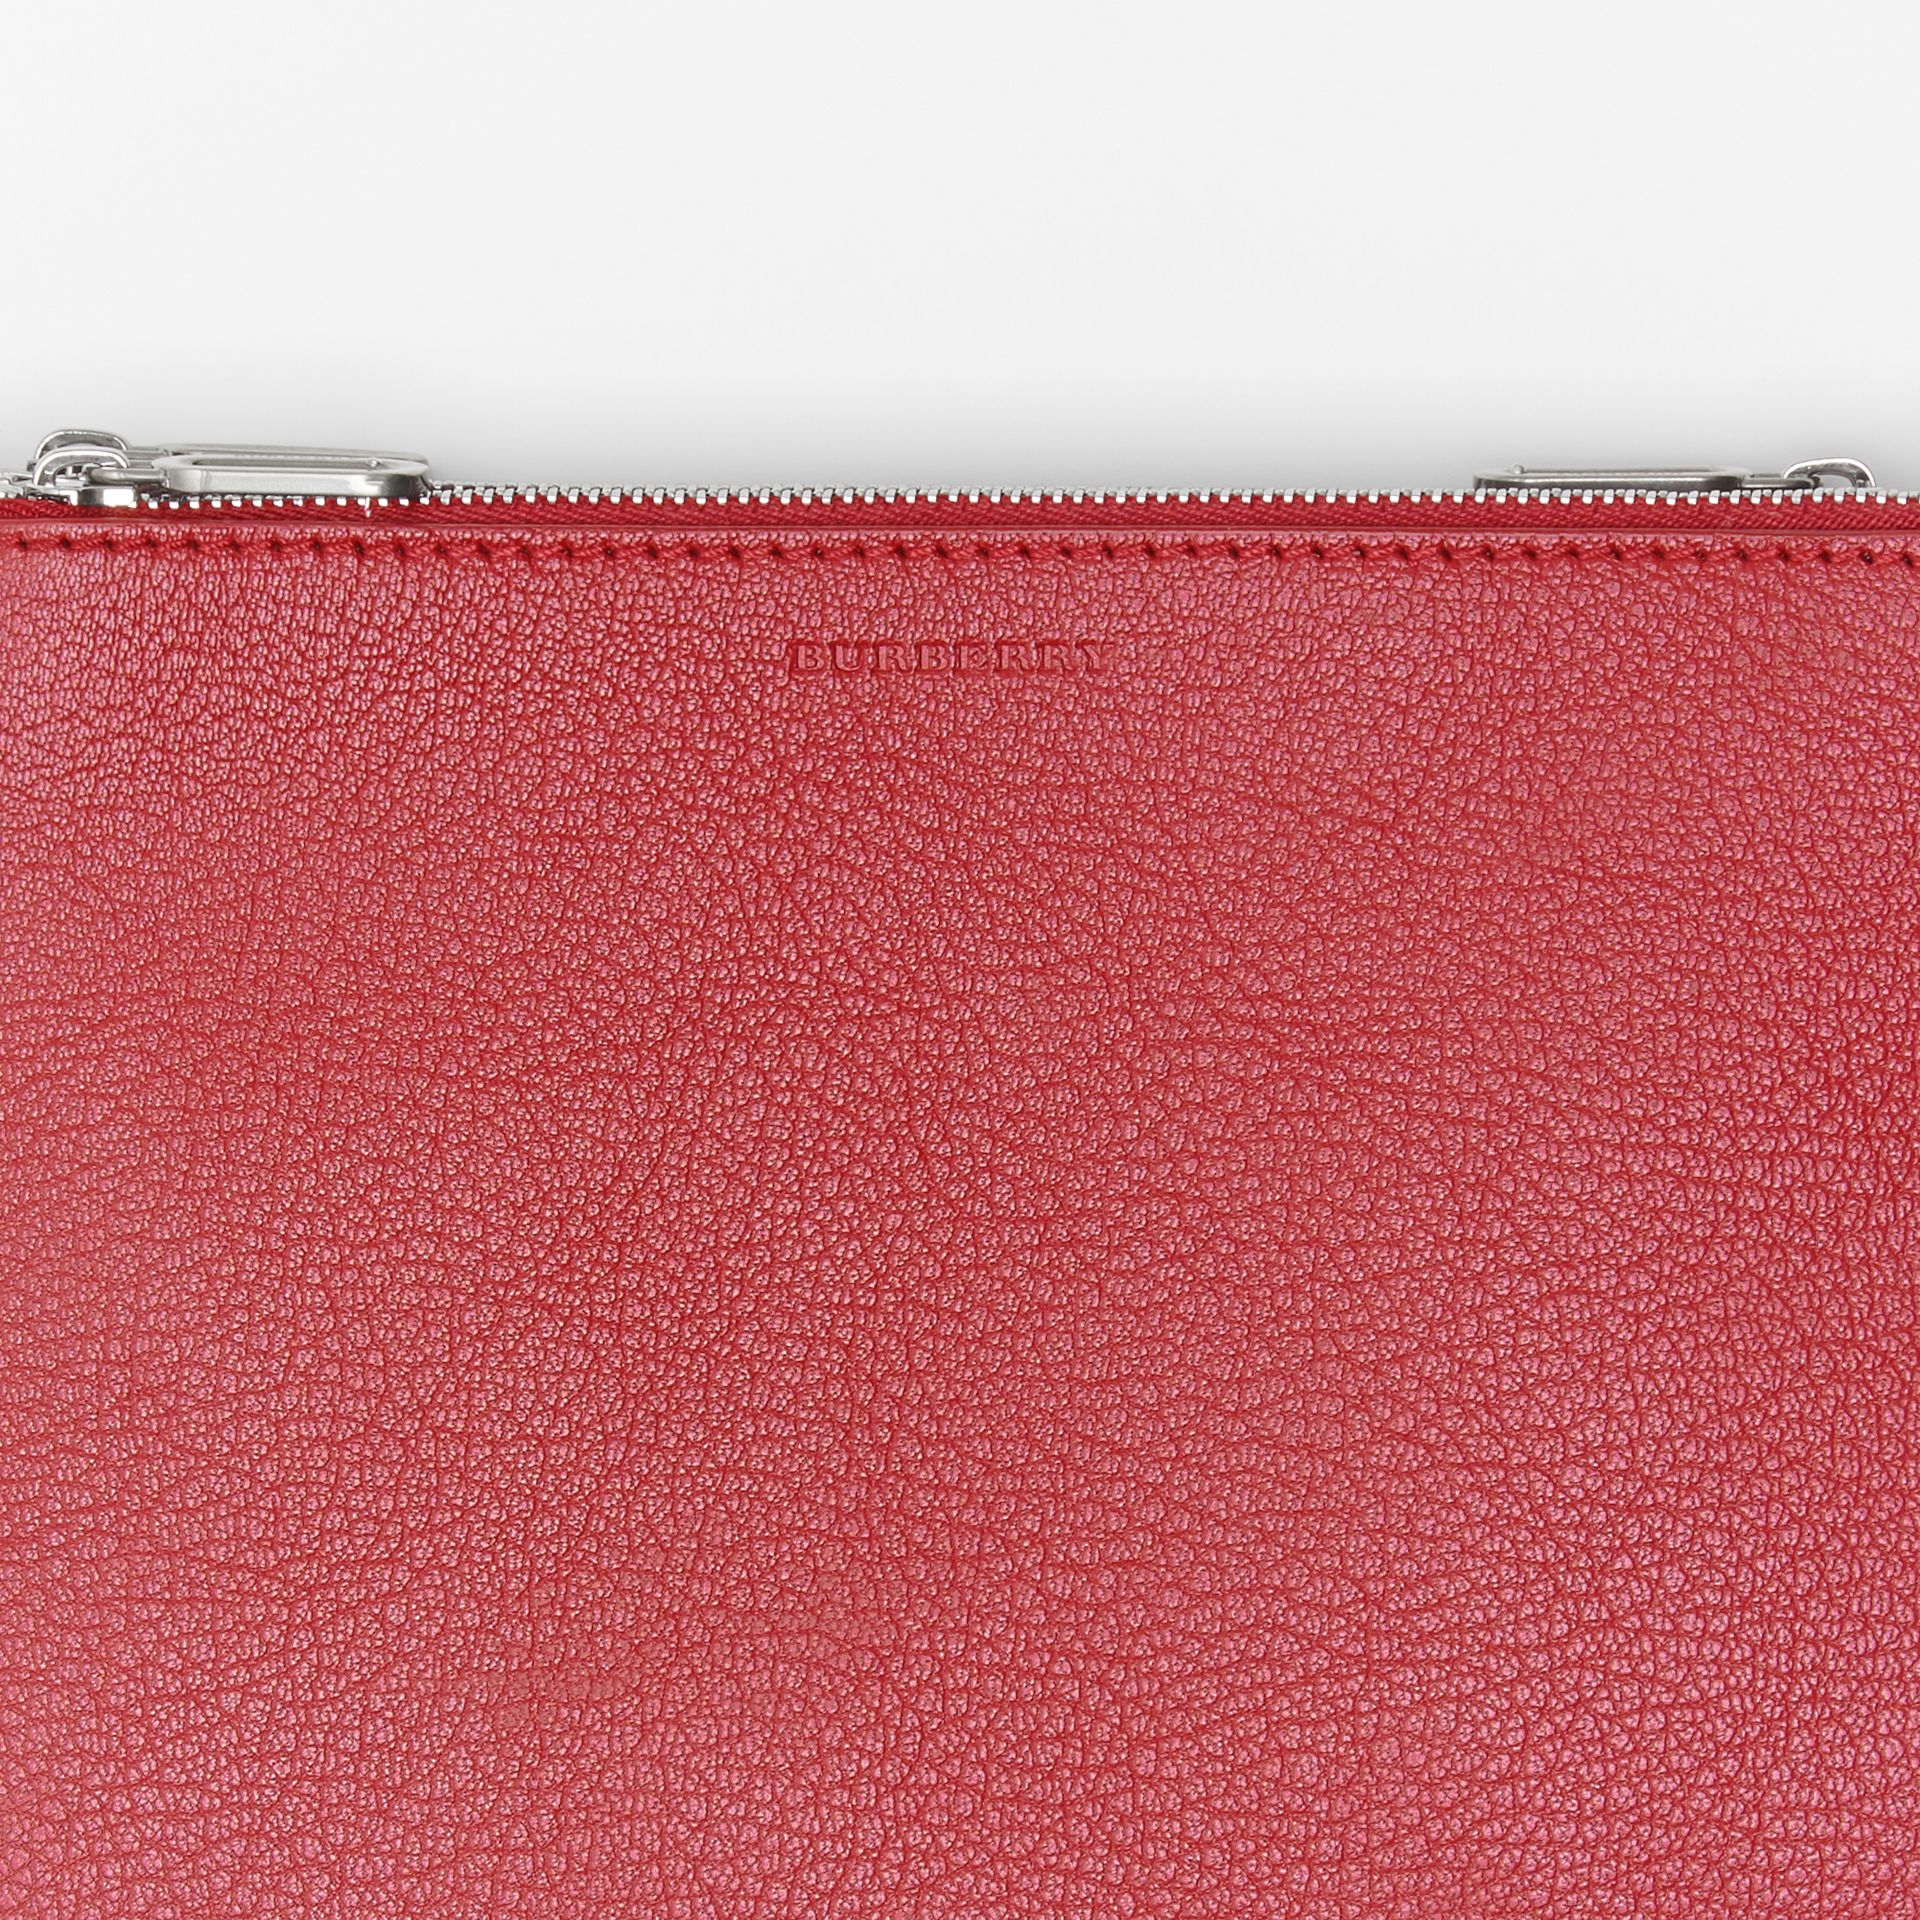 Triple Zip Grainy Leather Crossbody Bag in Crimson - Women | Burberry - gallery image 1